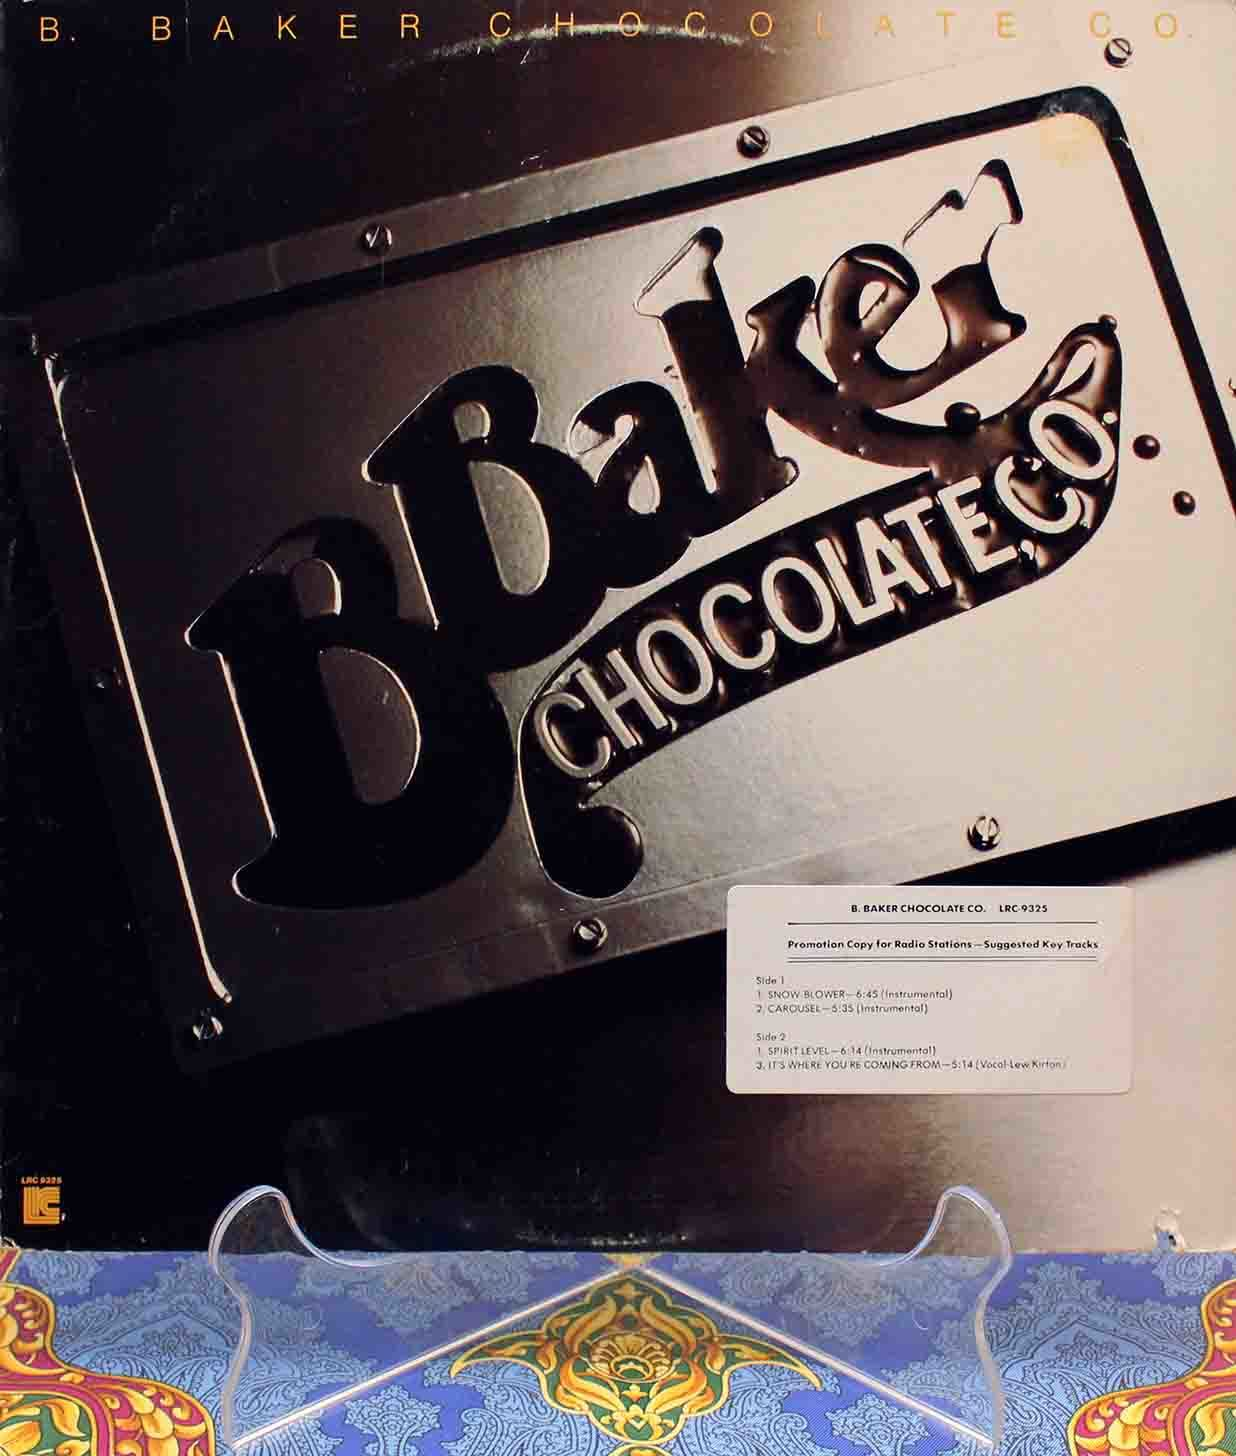 B Baker Chocolate Co 01